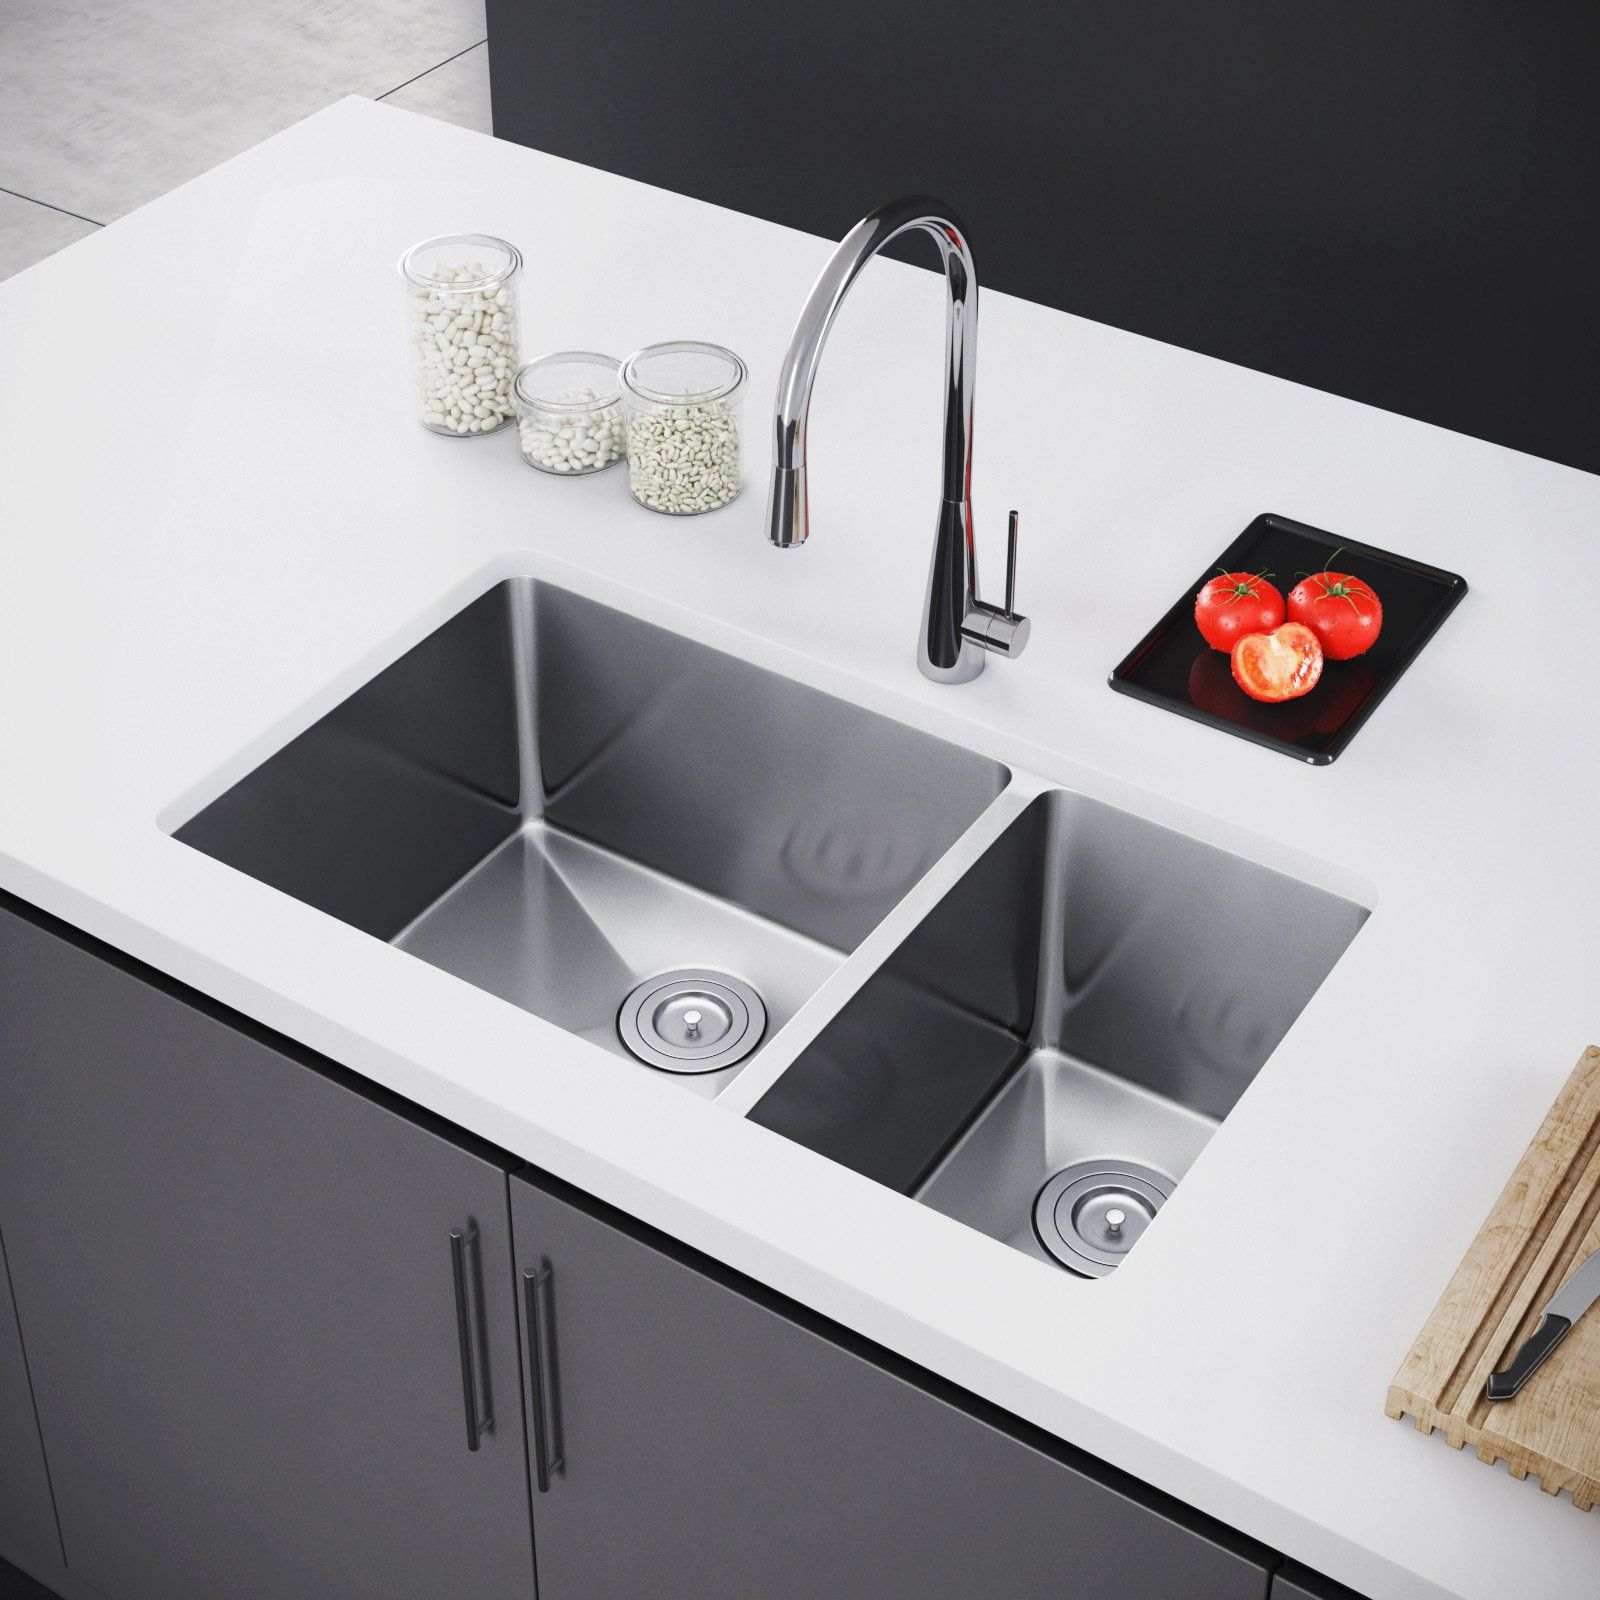 Exclusive Heritage Double Bowl Undermount Ksh 3118 D7 Kitchen Sink